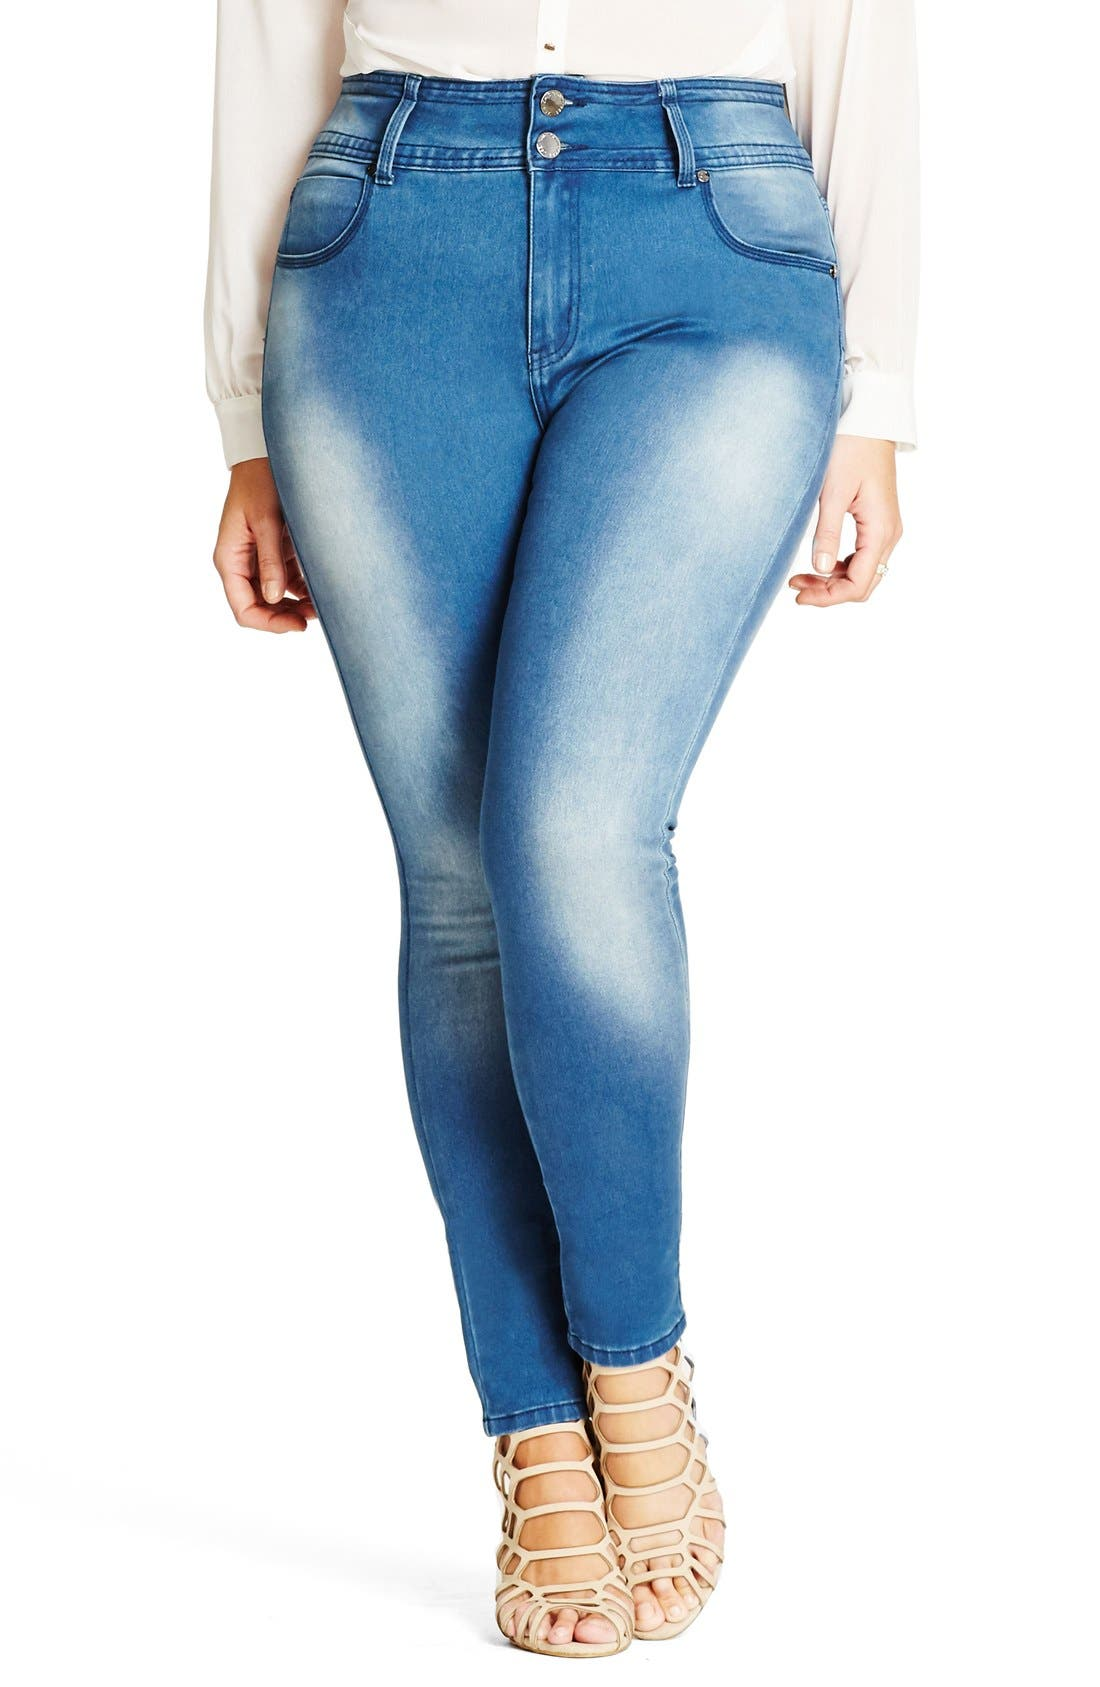 CITY CHIC 'Harley' Stretch Skinny Jeans